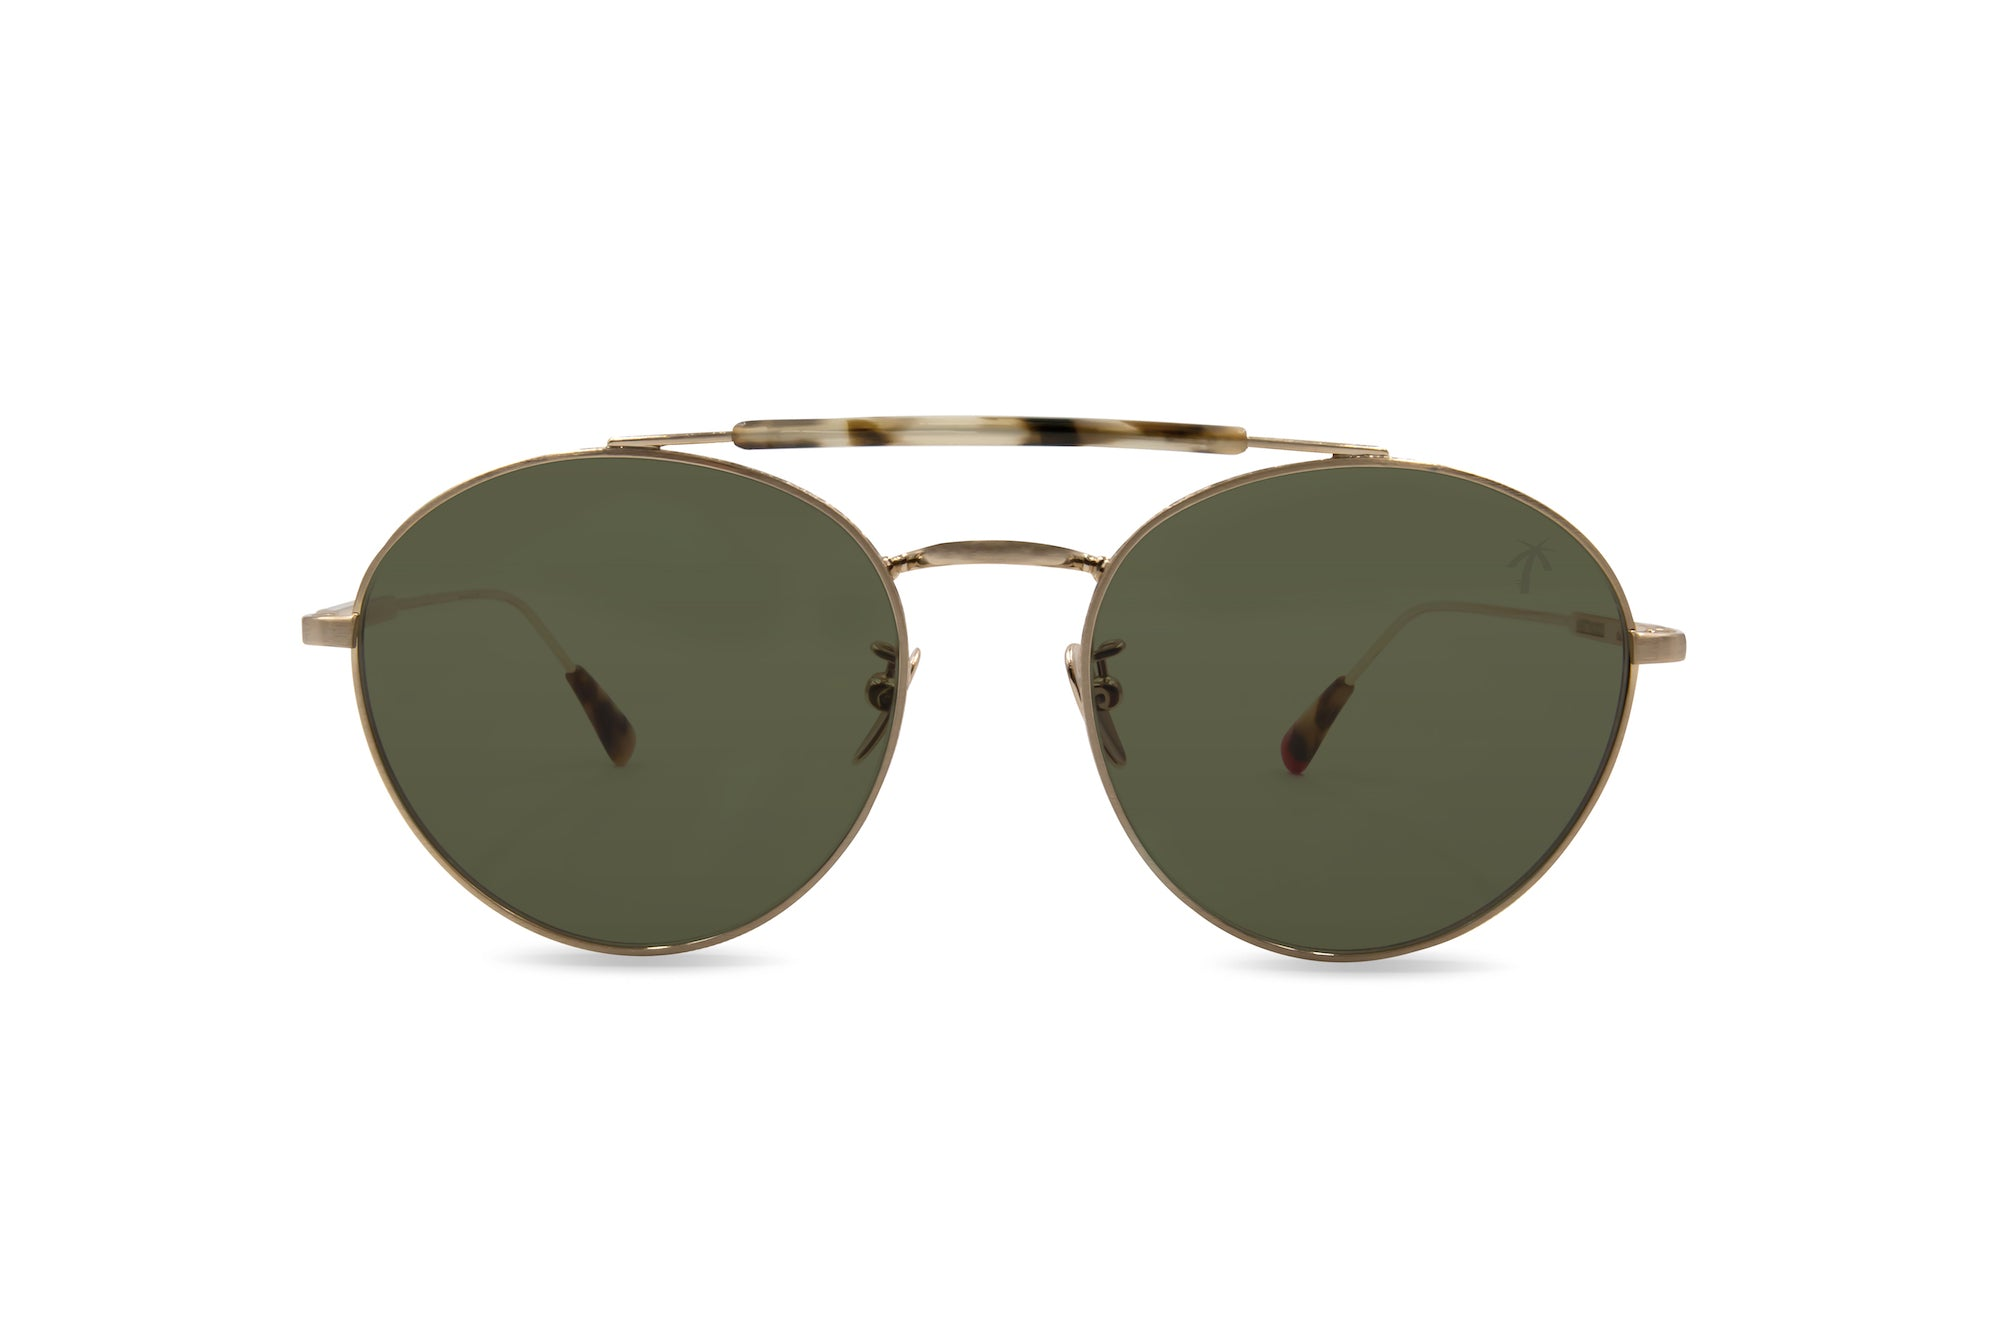 Westwood in Olive Green - Peppertint - Designer sunglasses